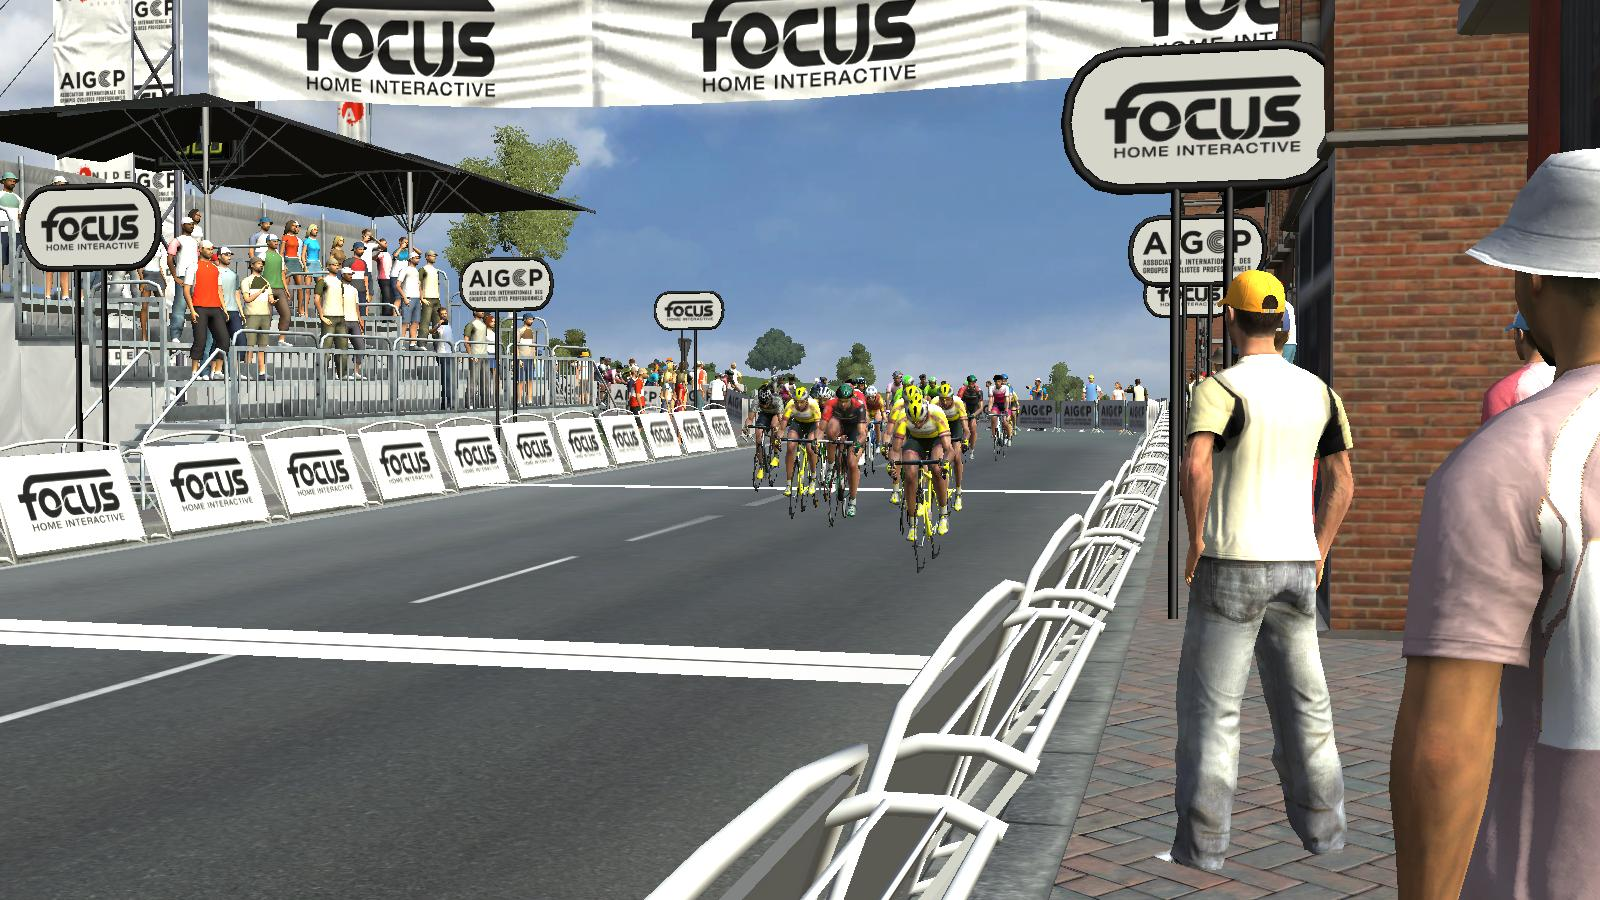 pcmdaily.com/images/mg/2019/Races/PTHC/Rheden/6.jpg